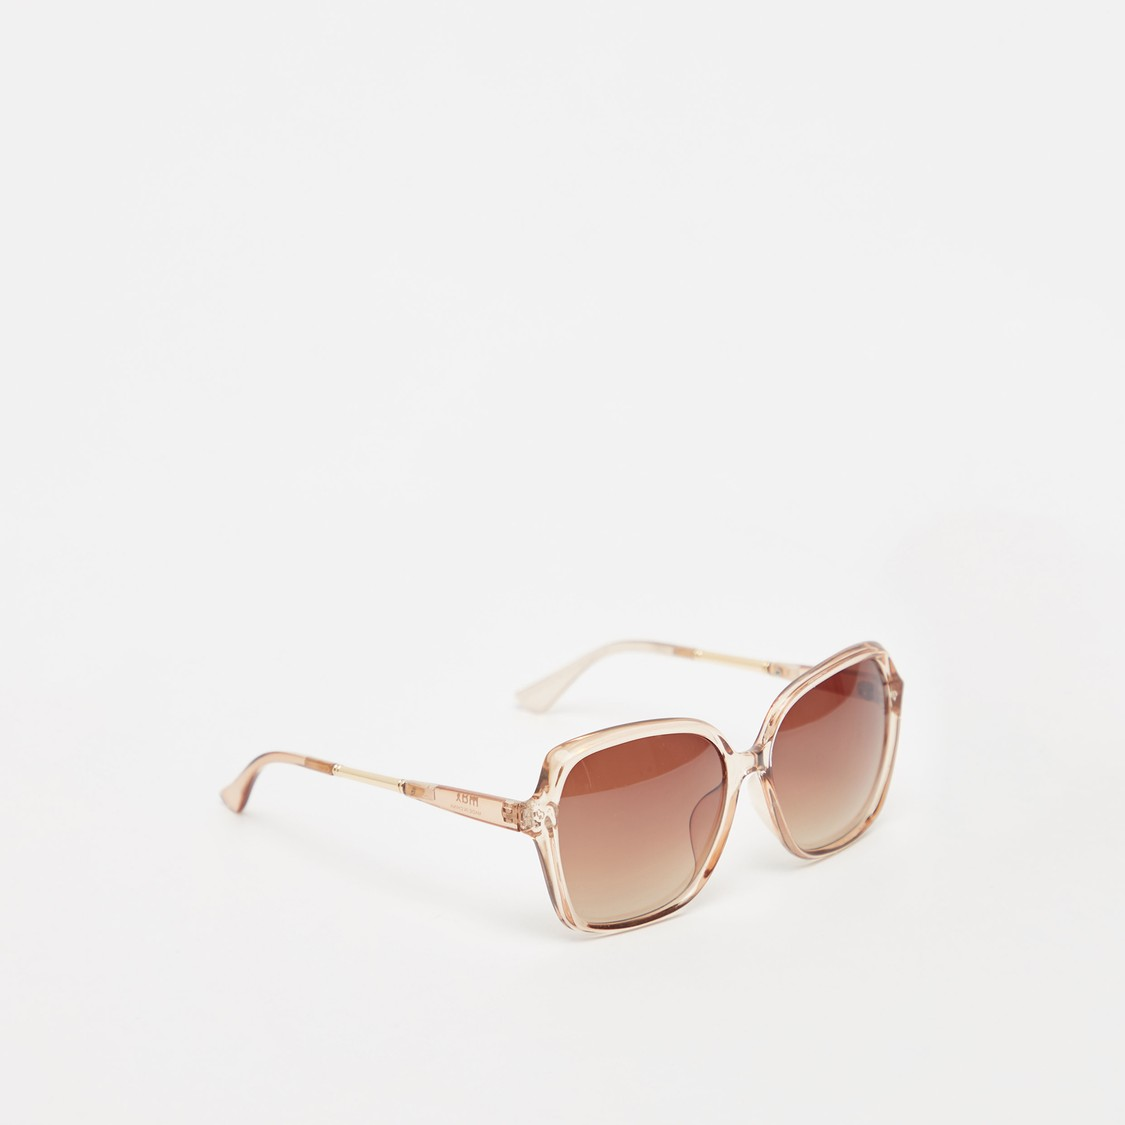 Full Rim Tinted Sunglasses with Nose Pads